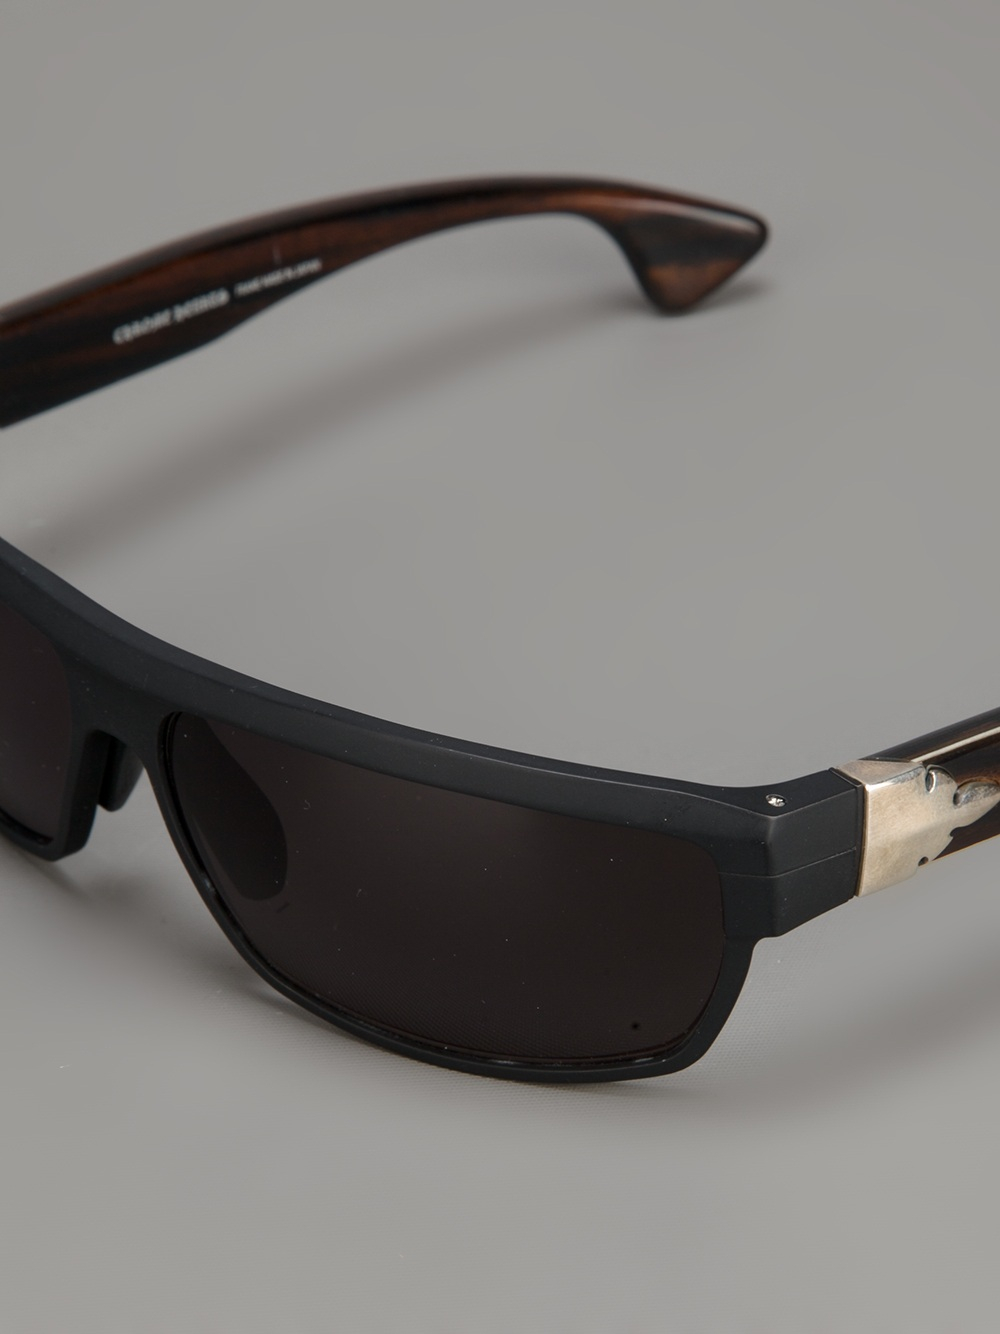 Chrome Hearts Home Plate Sunglasses In Black For Men Lyst